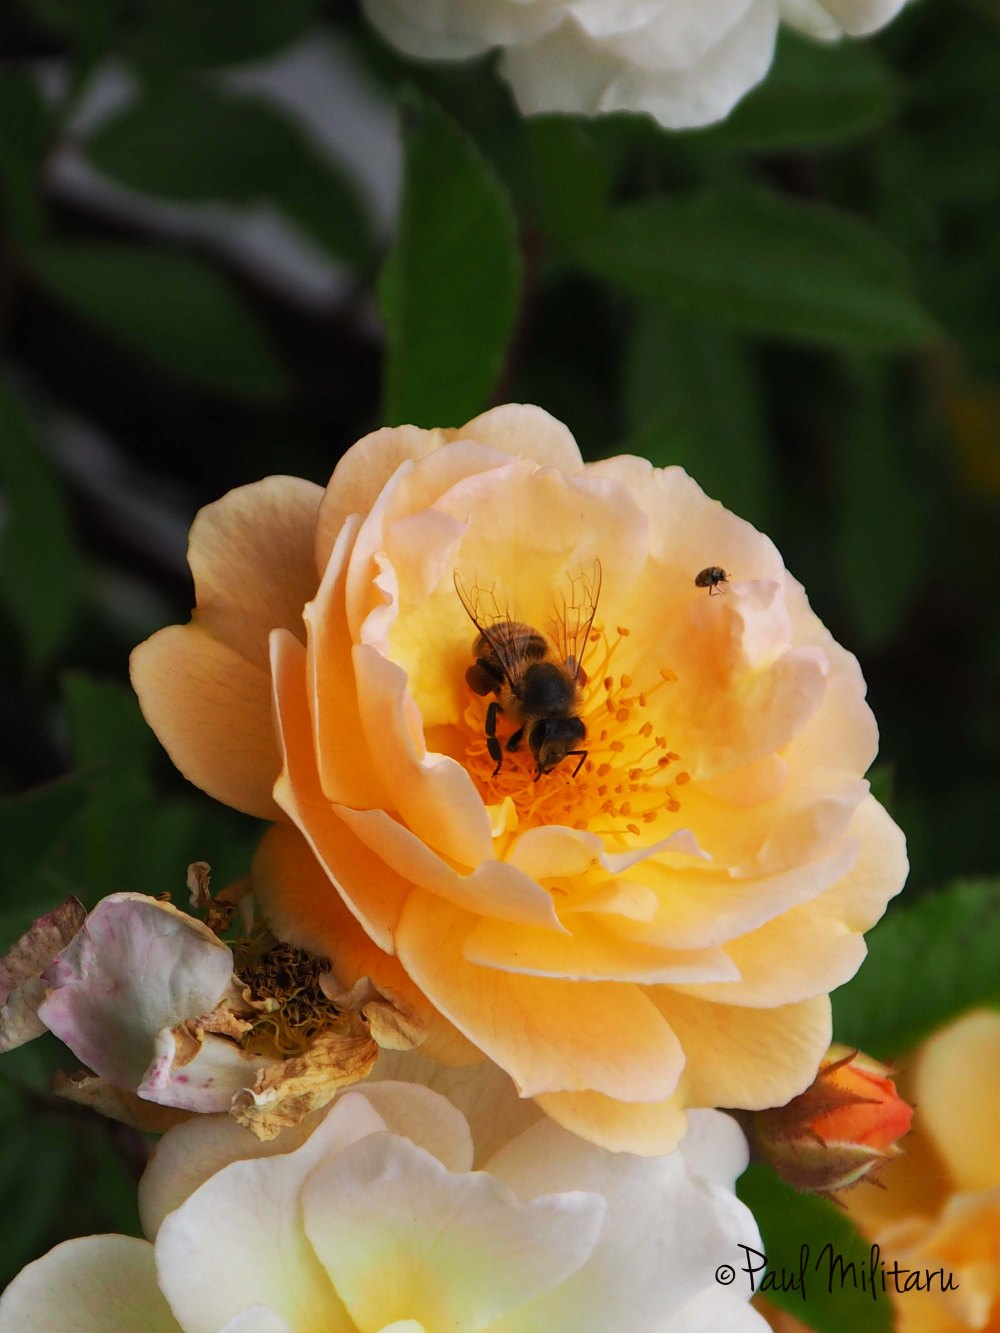 a rose and a bee